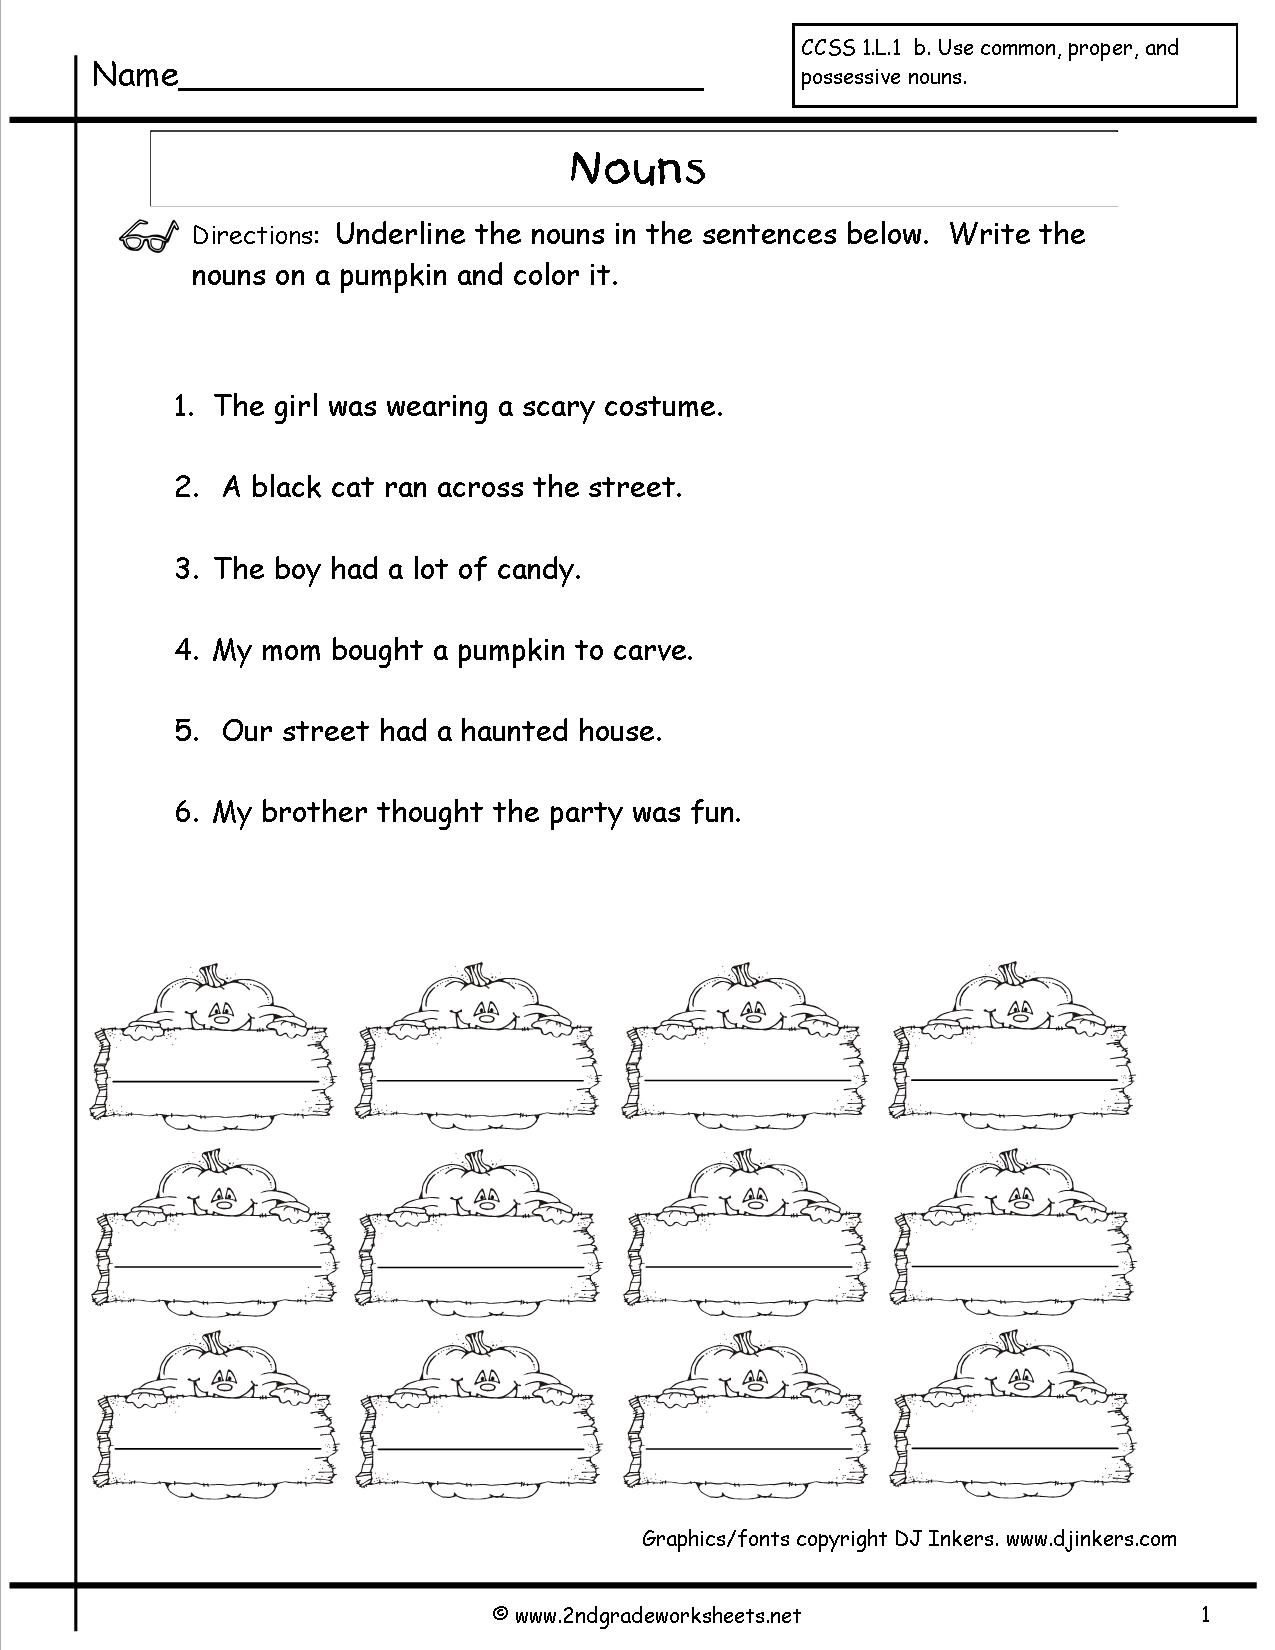 Nouns Worksheets And Printouts | Free Printable Verb Worksheets